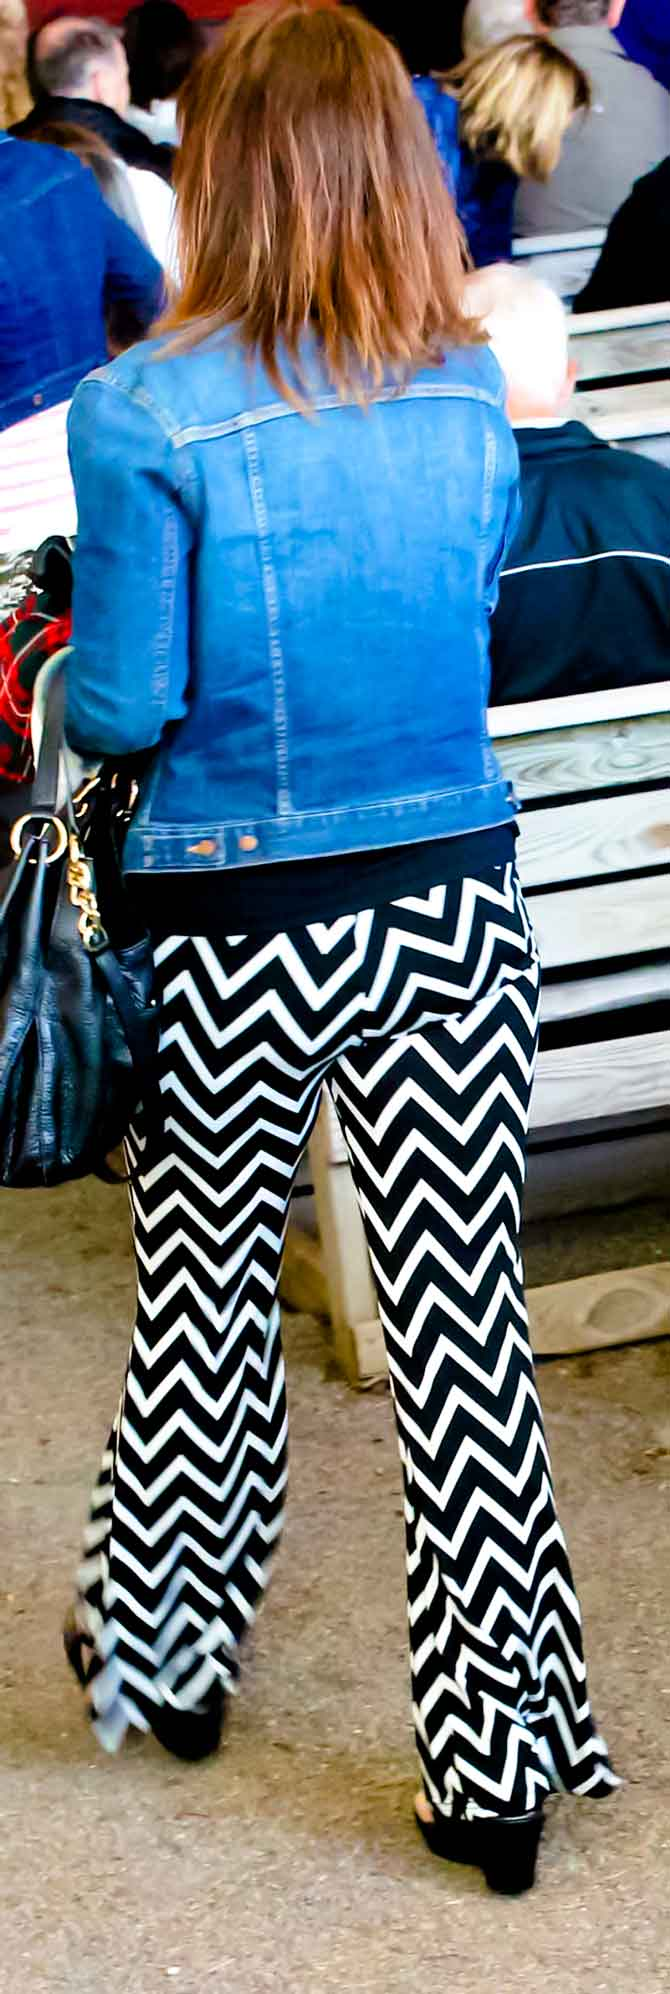 Bold graphic fabric - Zigzag pants make a good source of inspiration for a quilting design